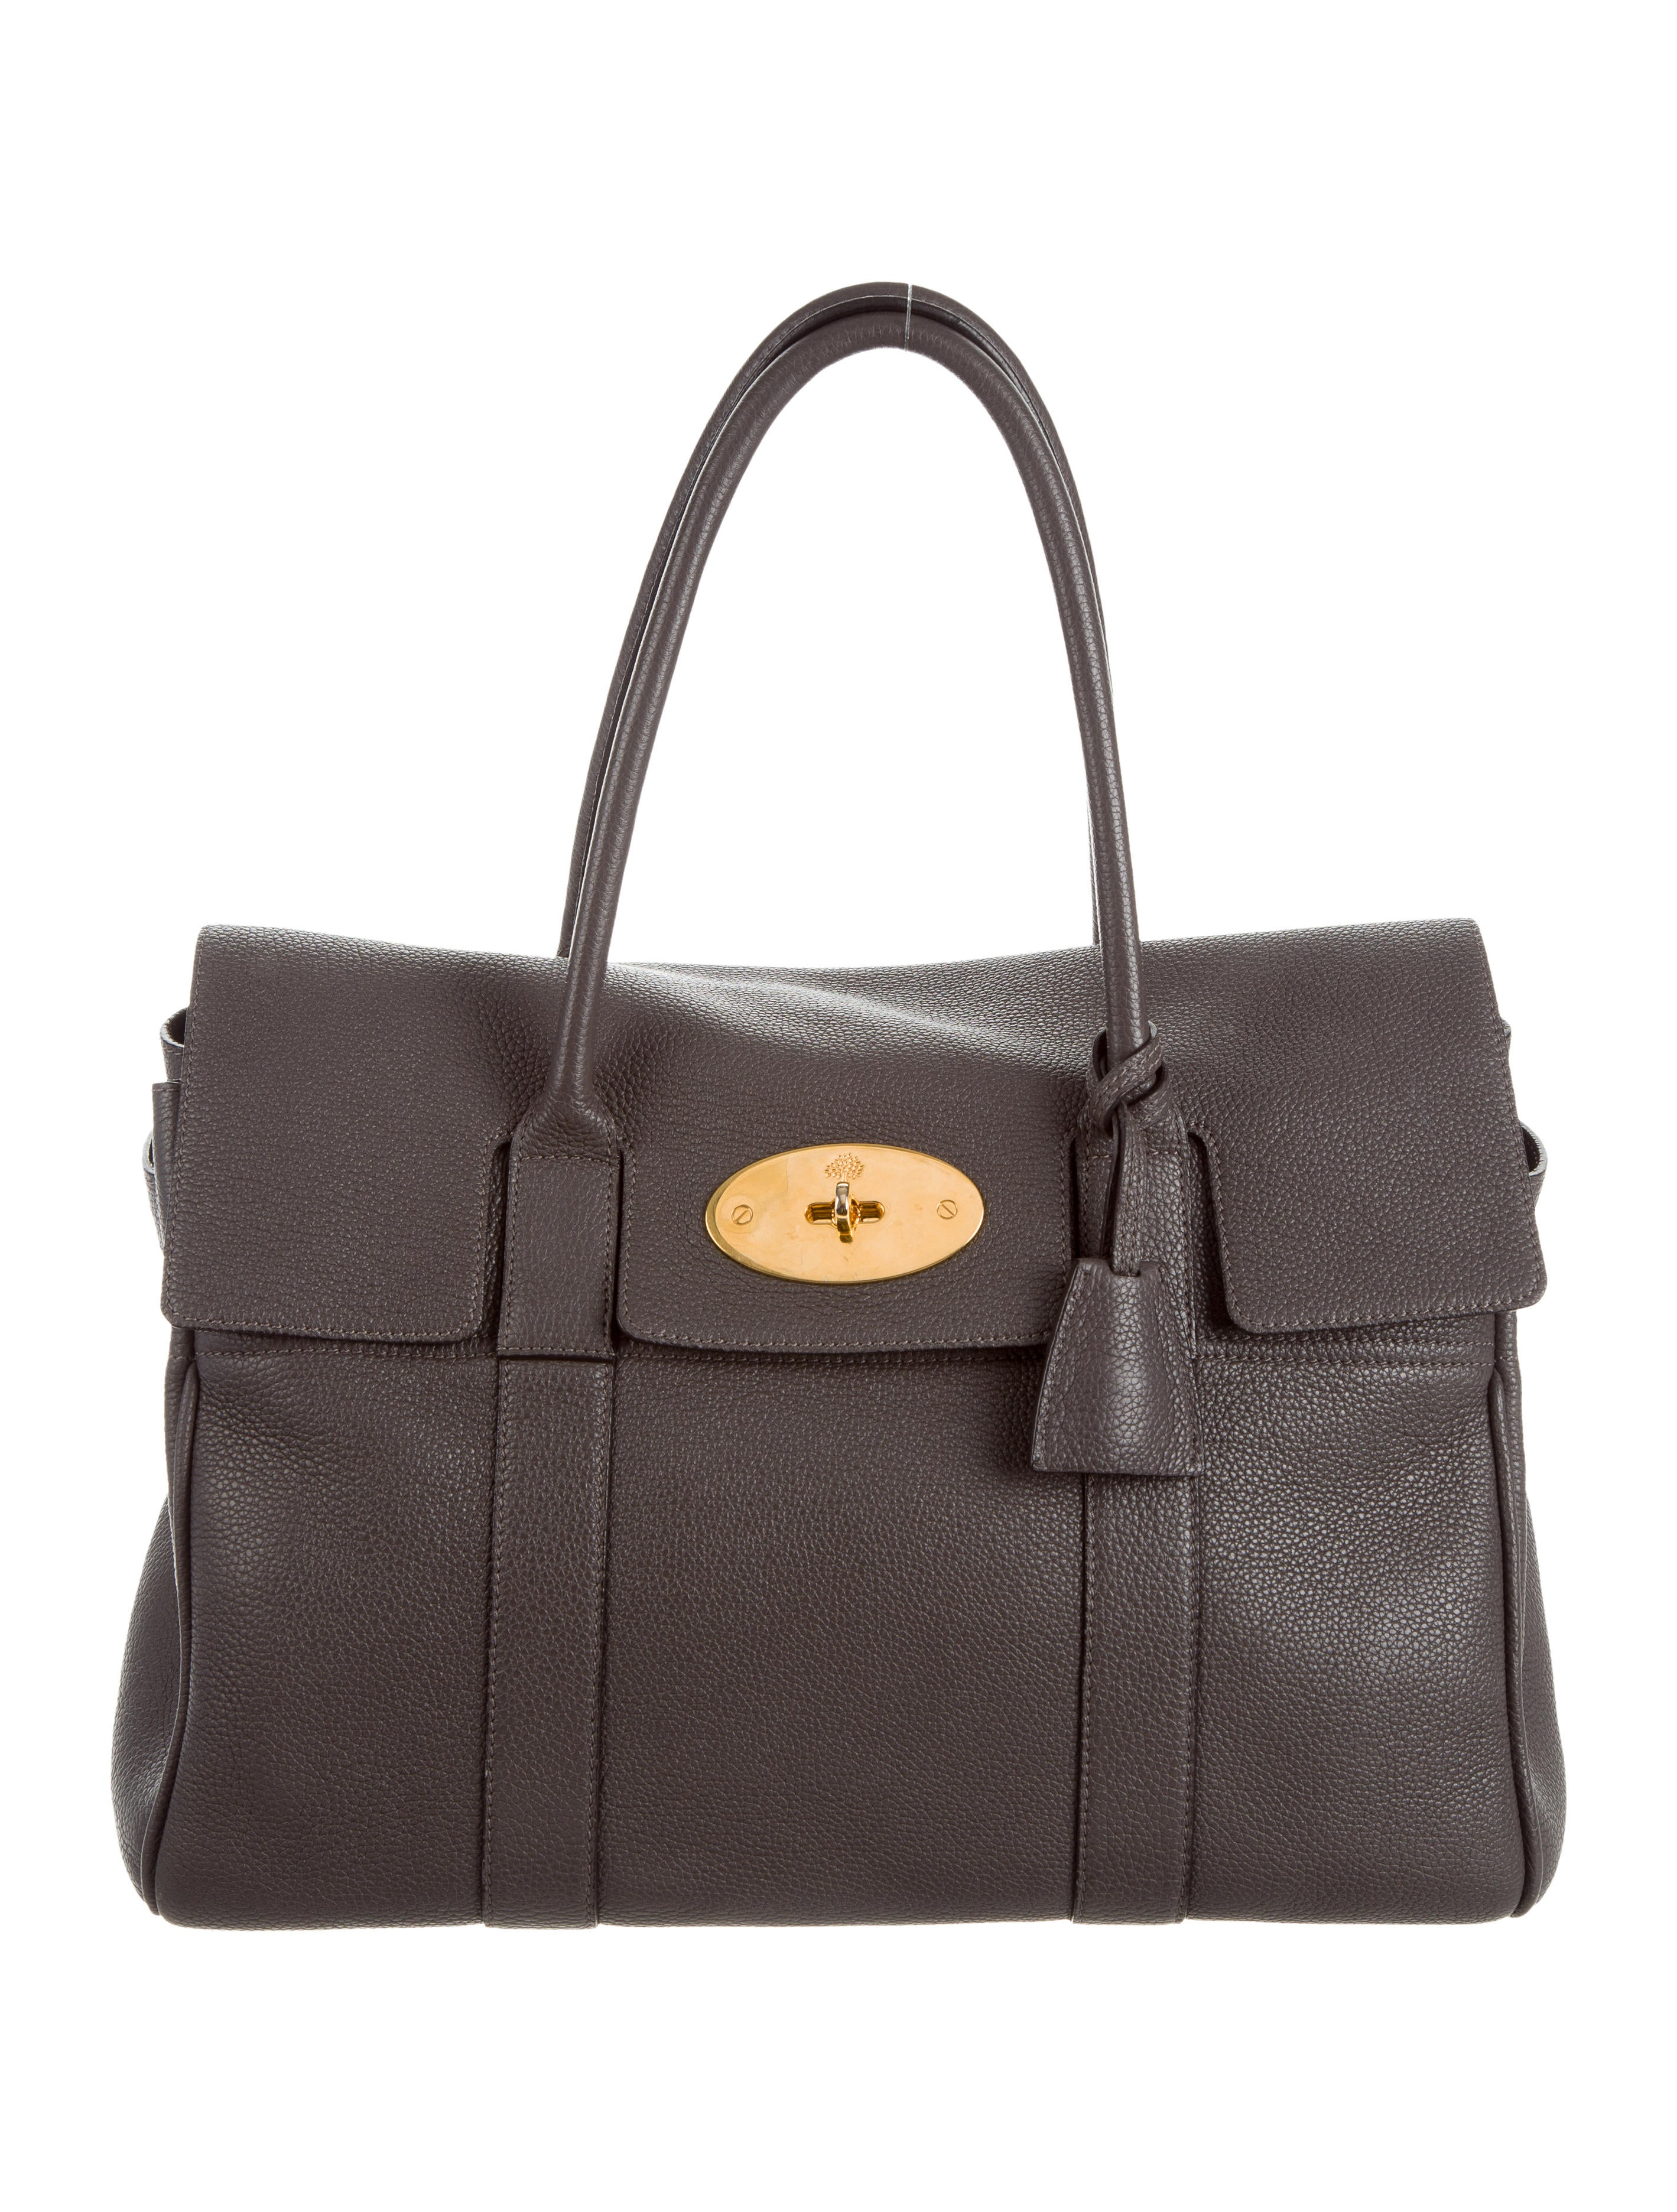 f77c5d5393 Mulberry Leather Bayswater Bag - Handbags - MUL22787